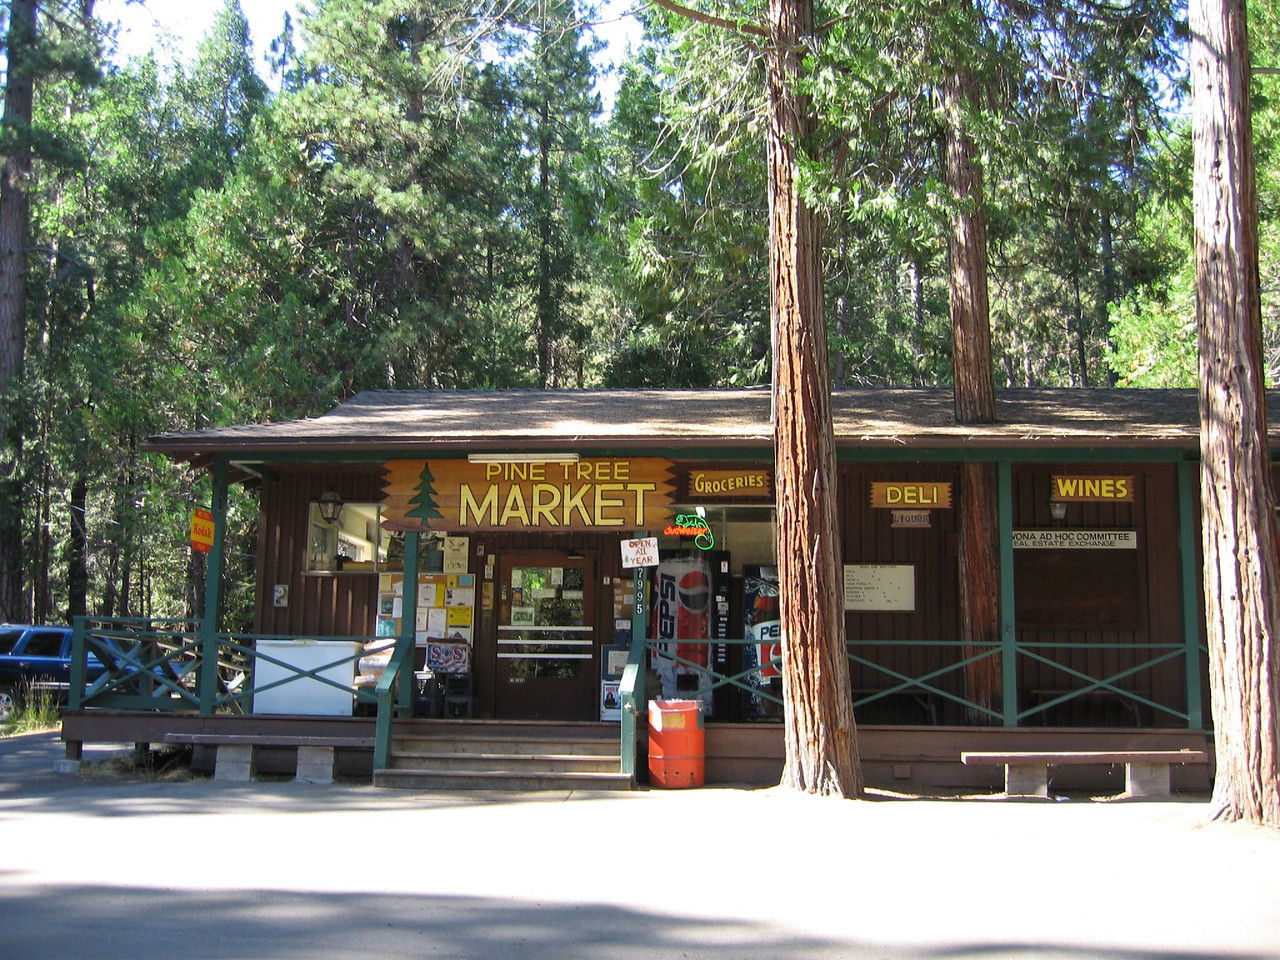 Pine Tree Market, Wawona CA. <br /> Good old Pine Tree market...  Wawona CA.